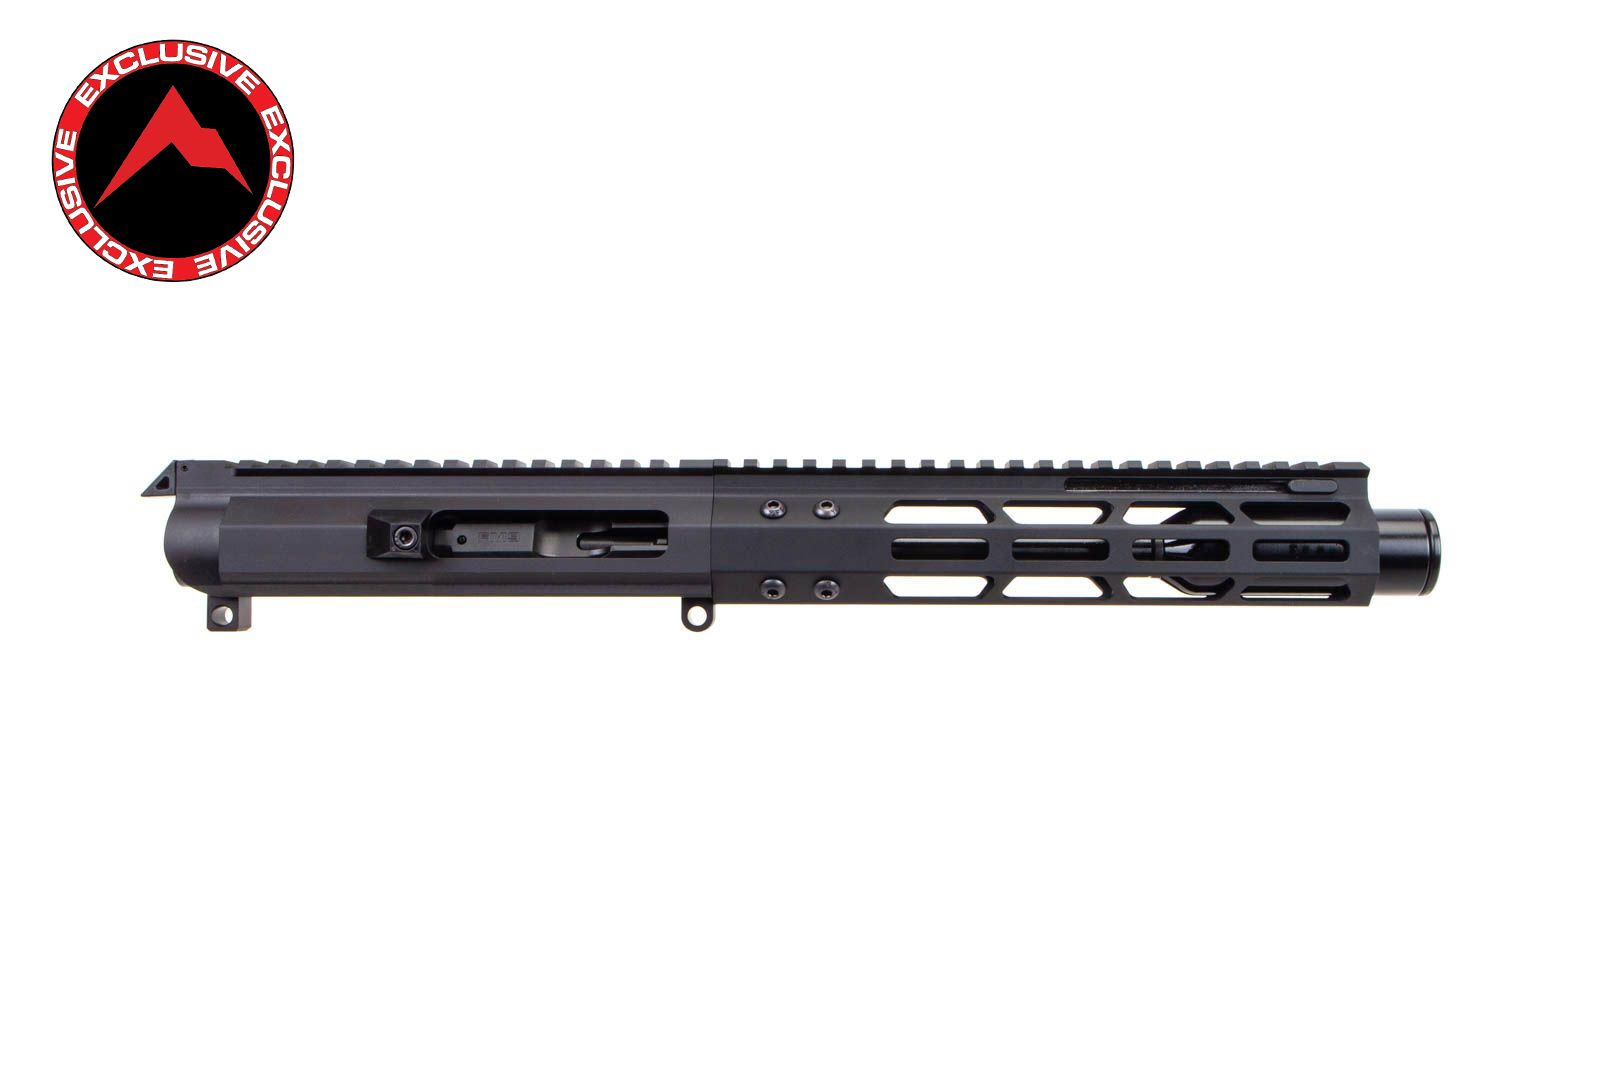 Foxtrot Mike FM Products AR-15 9mm Complete Side Charging Upper